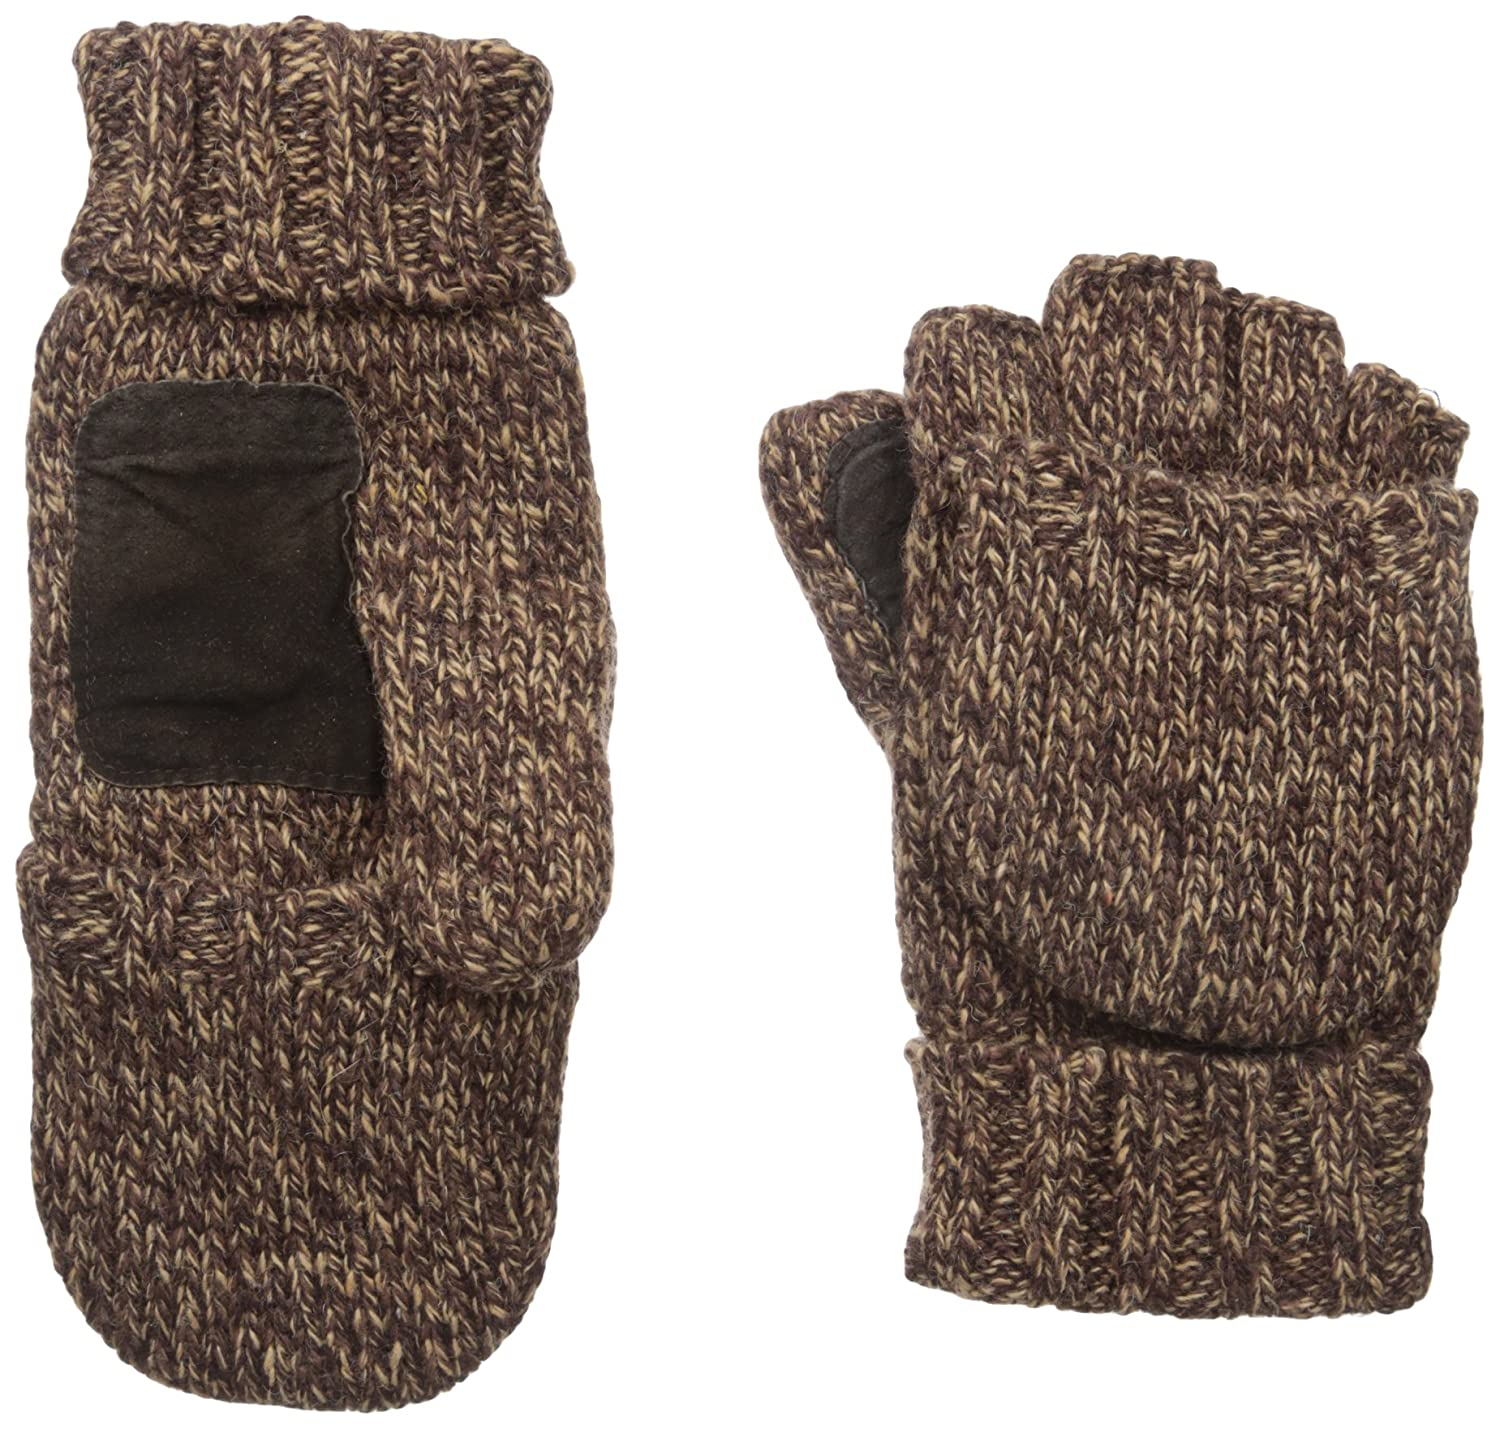 Mens gloves with mitten flap - Men S Rag Wool Convertible Fingerless Lined Gloves With Mitten Covers S M Brown At Amazon Men S Clothing Store